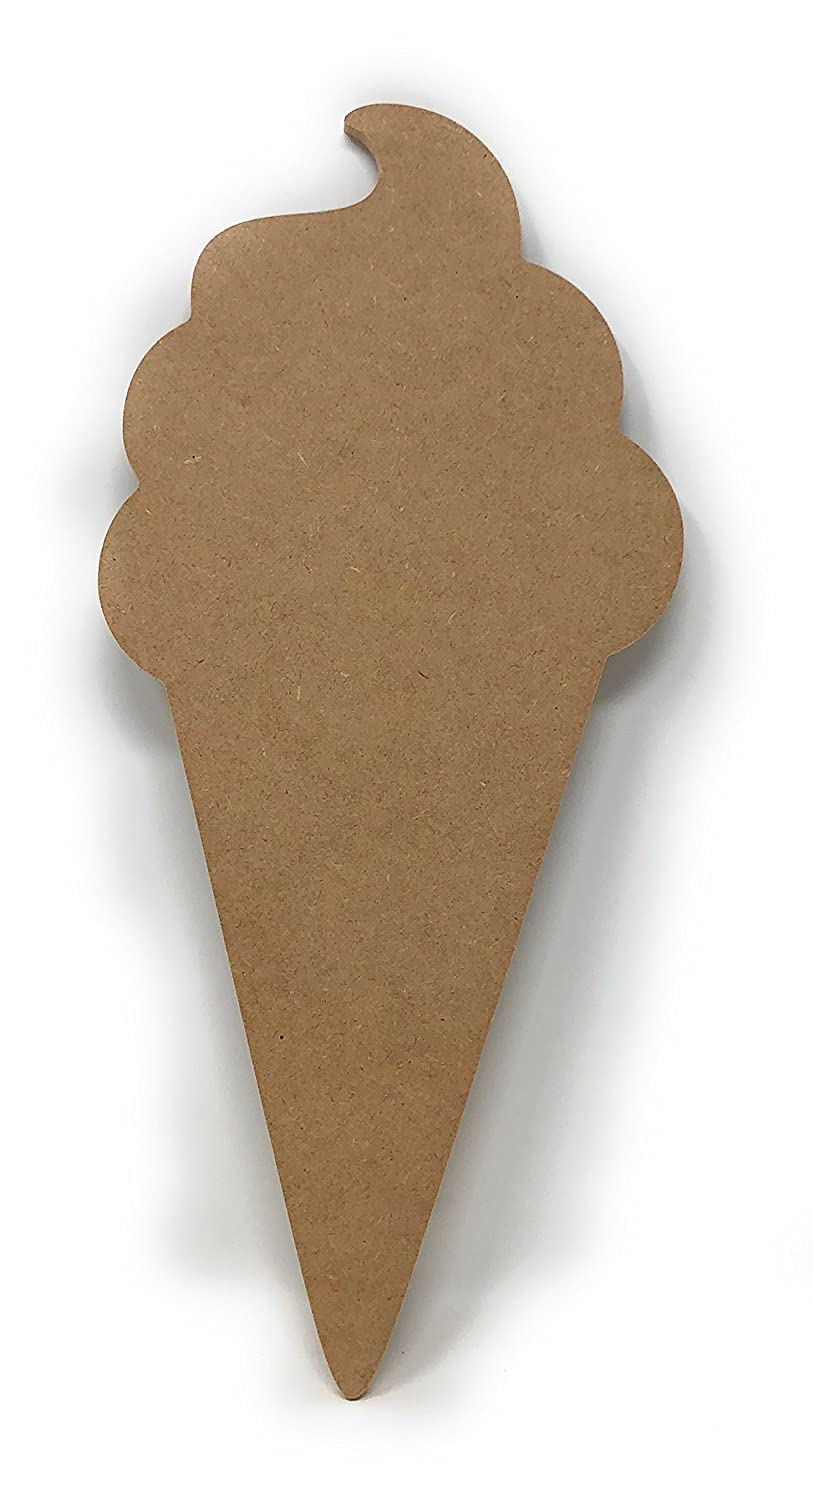 MDF CRAFT SHAPE WOODEN ICE LOLLY